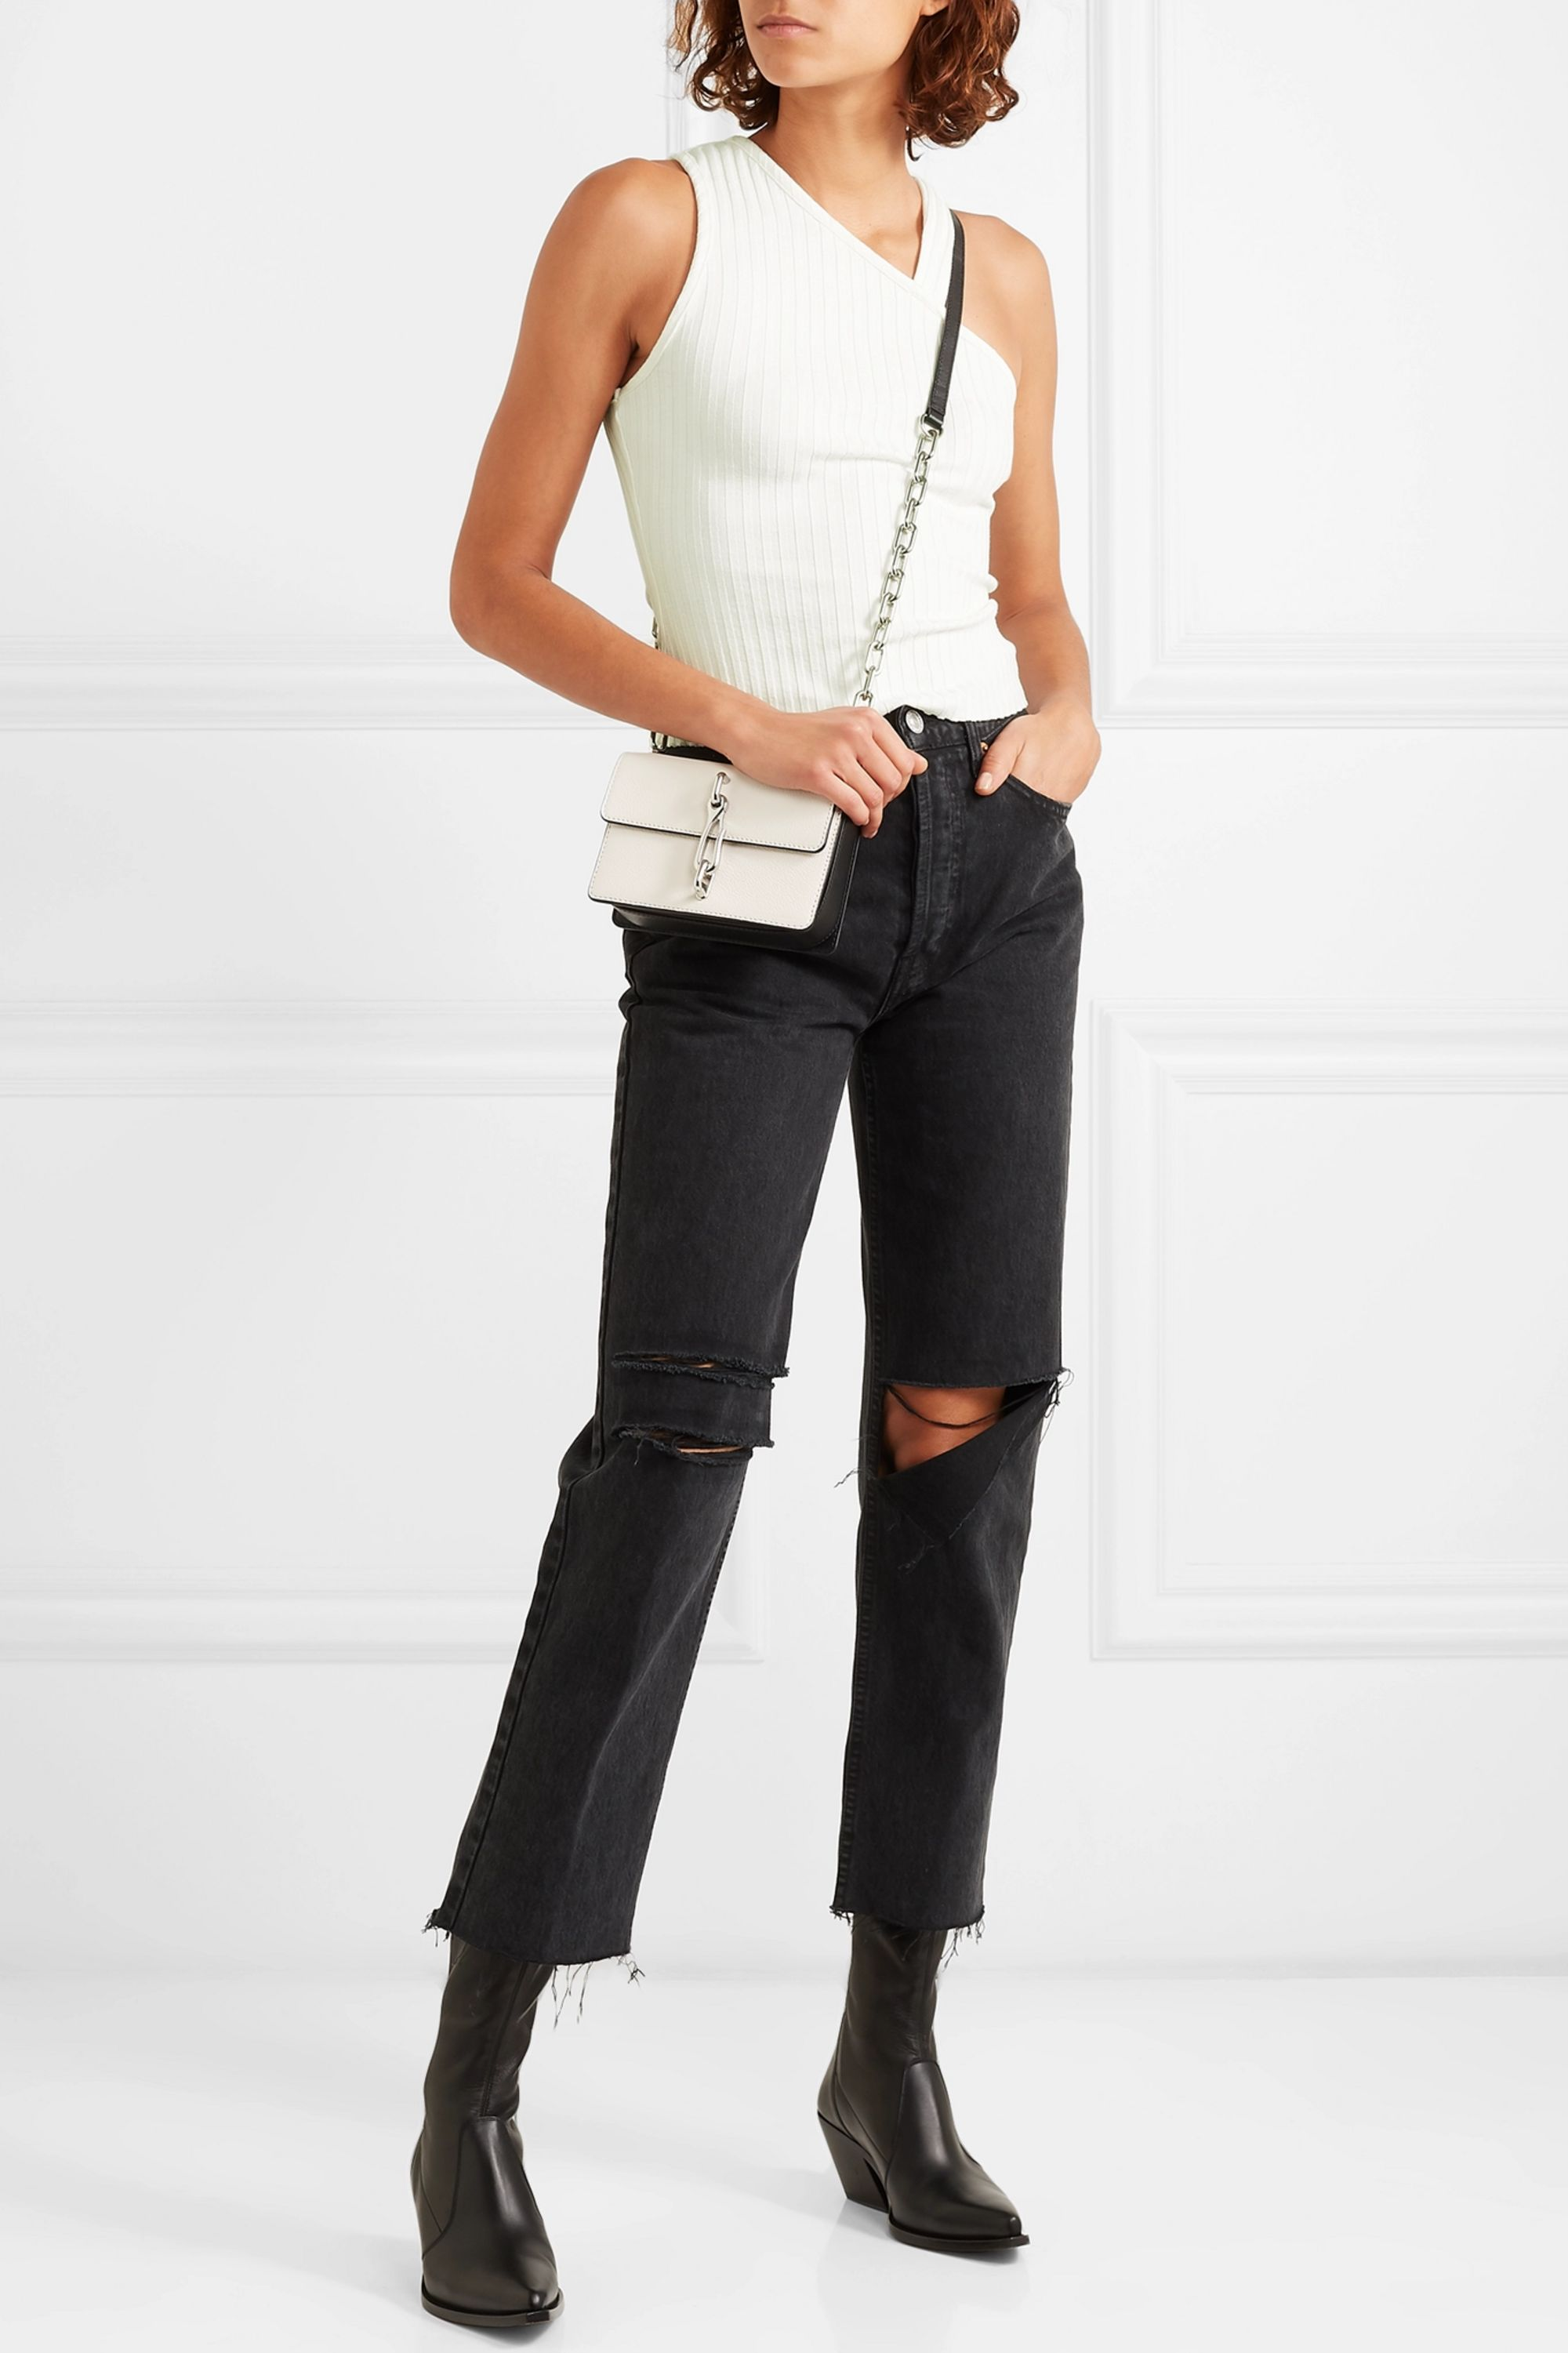 The Range One-shoulder ribbed stretch-jersey top